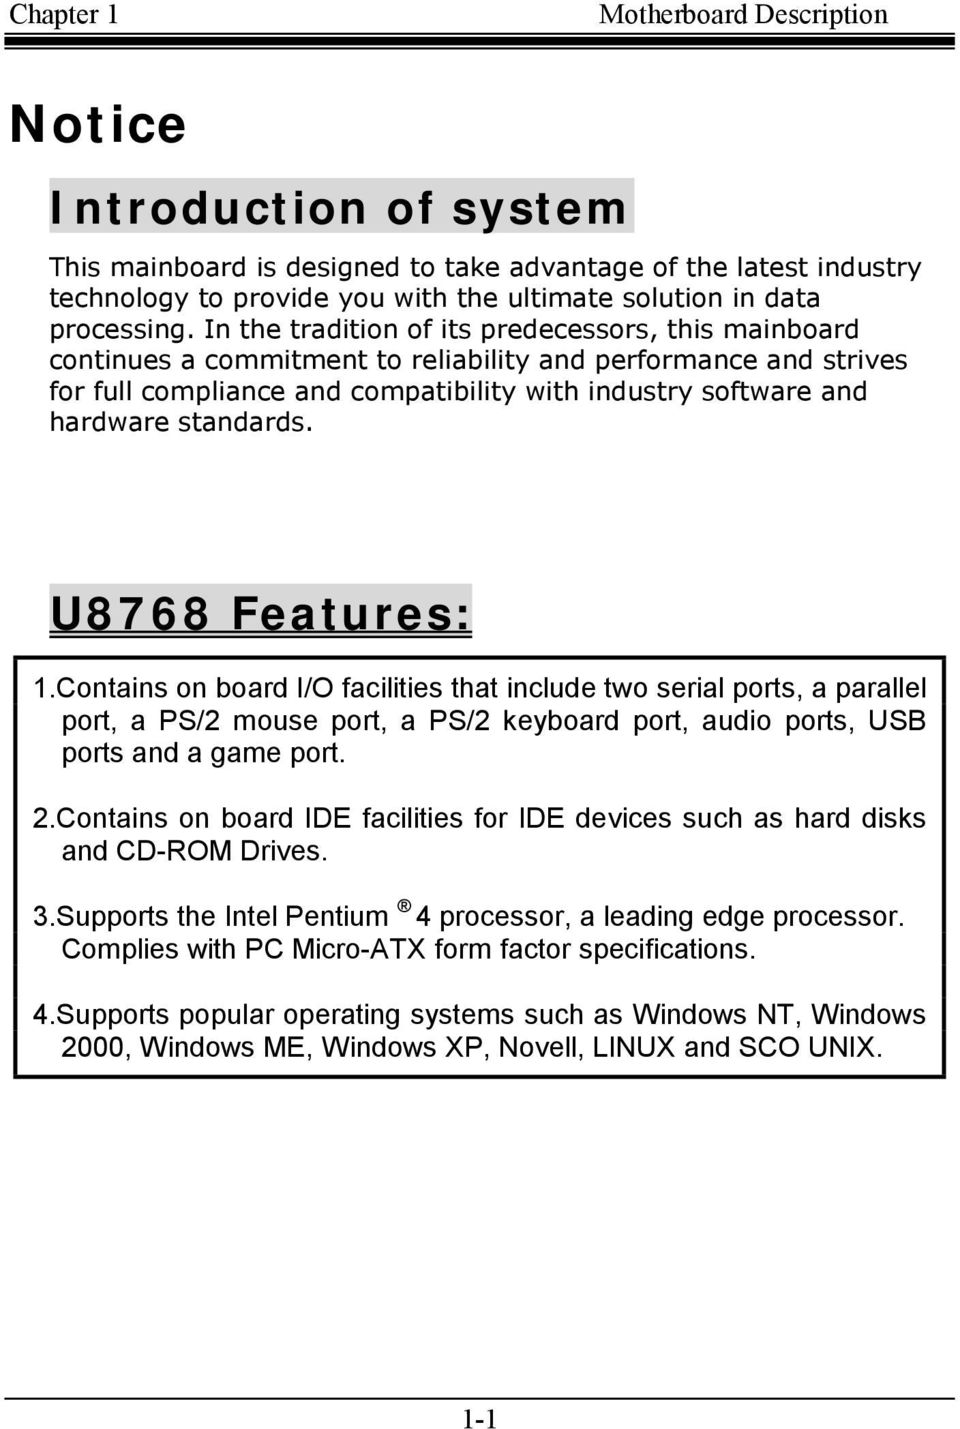 standards. U8768 Features:.Contains on board I/O facilities that include two serial ports, a parallel port, a PS/2 mouse port, a PS/2 keyboard port, audio ports, USB ports and a game port. 2.